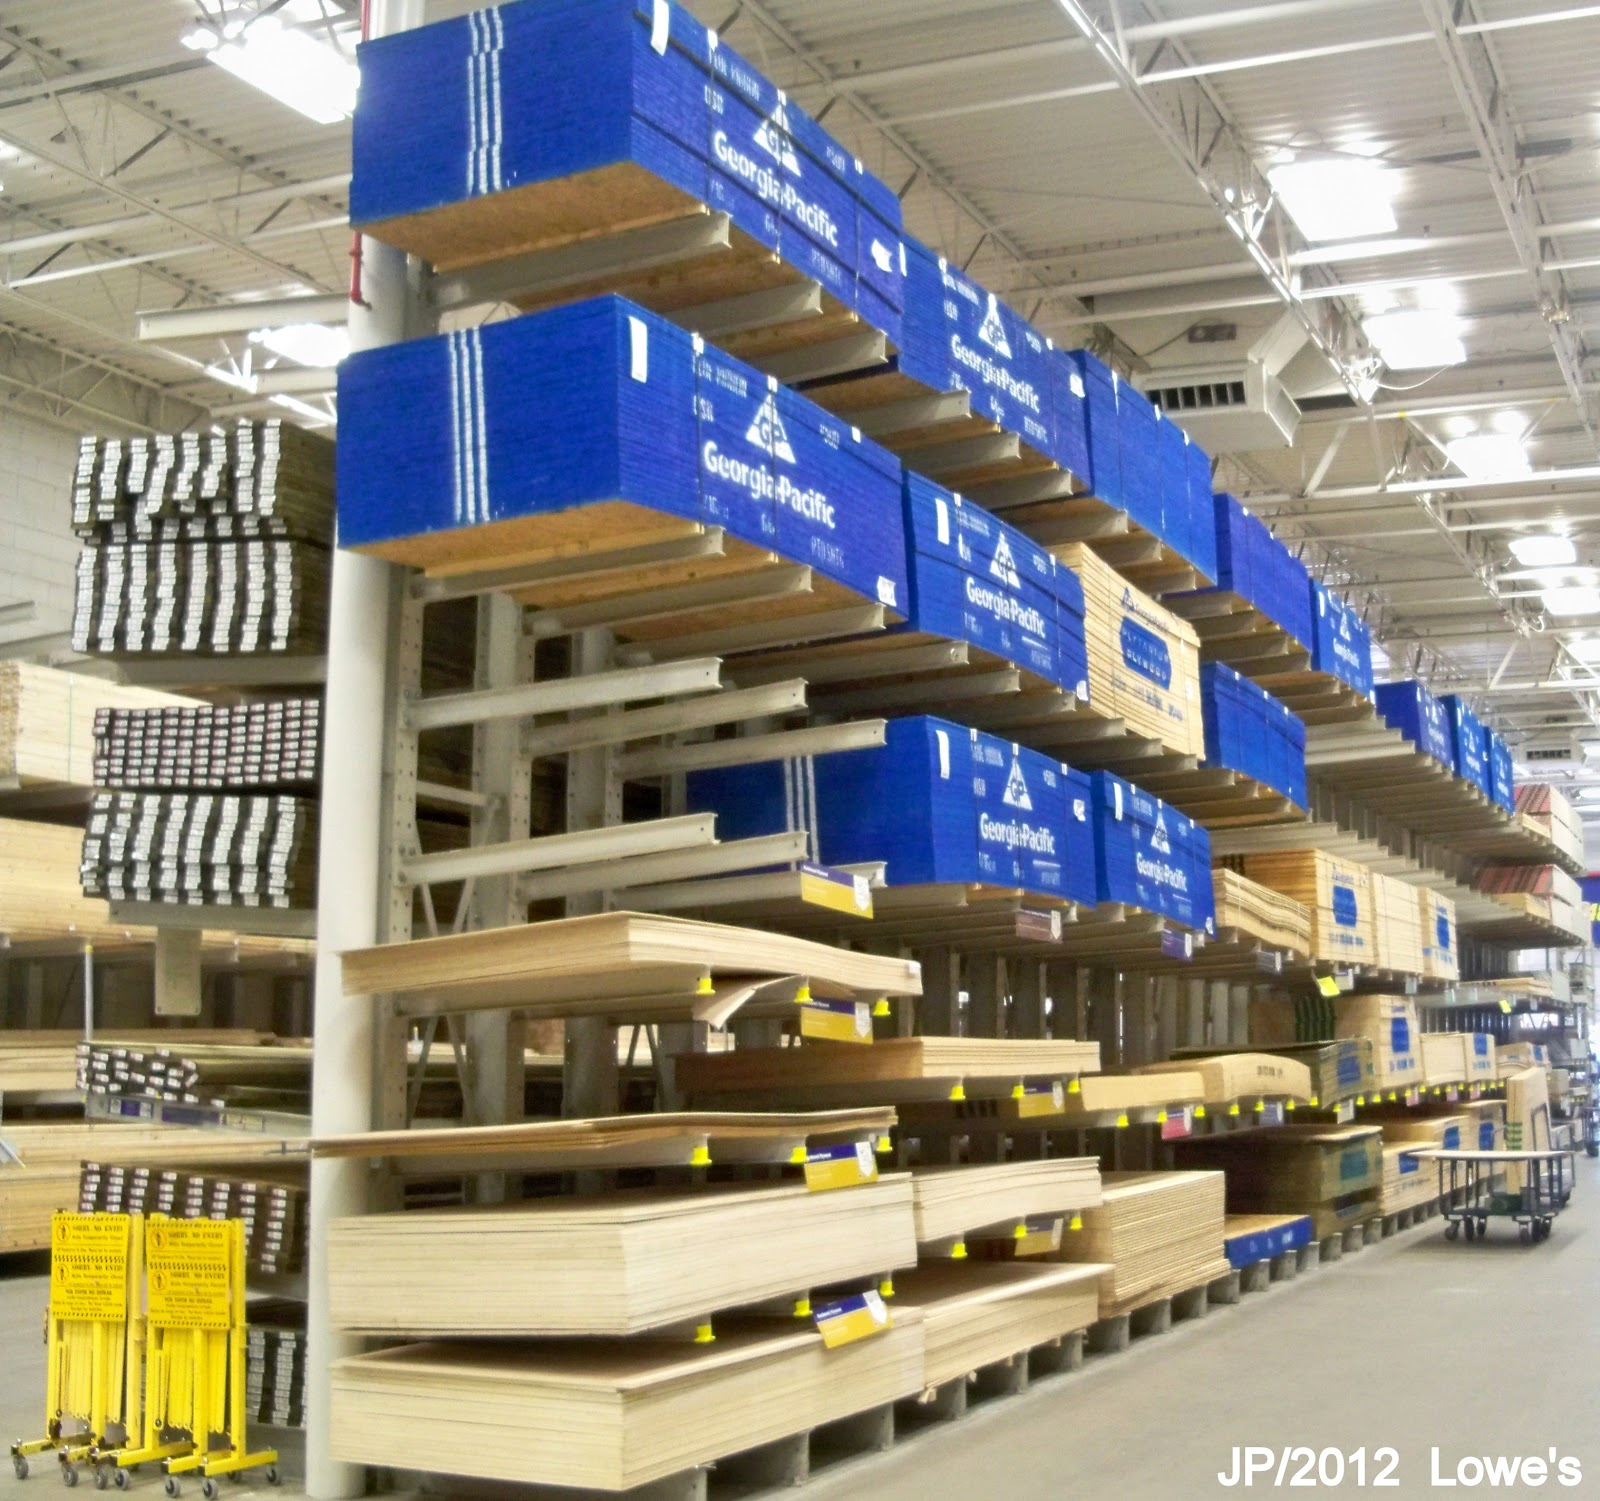 Outstanding Lowe's Home Improvement Store 1600 x 1501 · 408 kB · jpeg